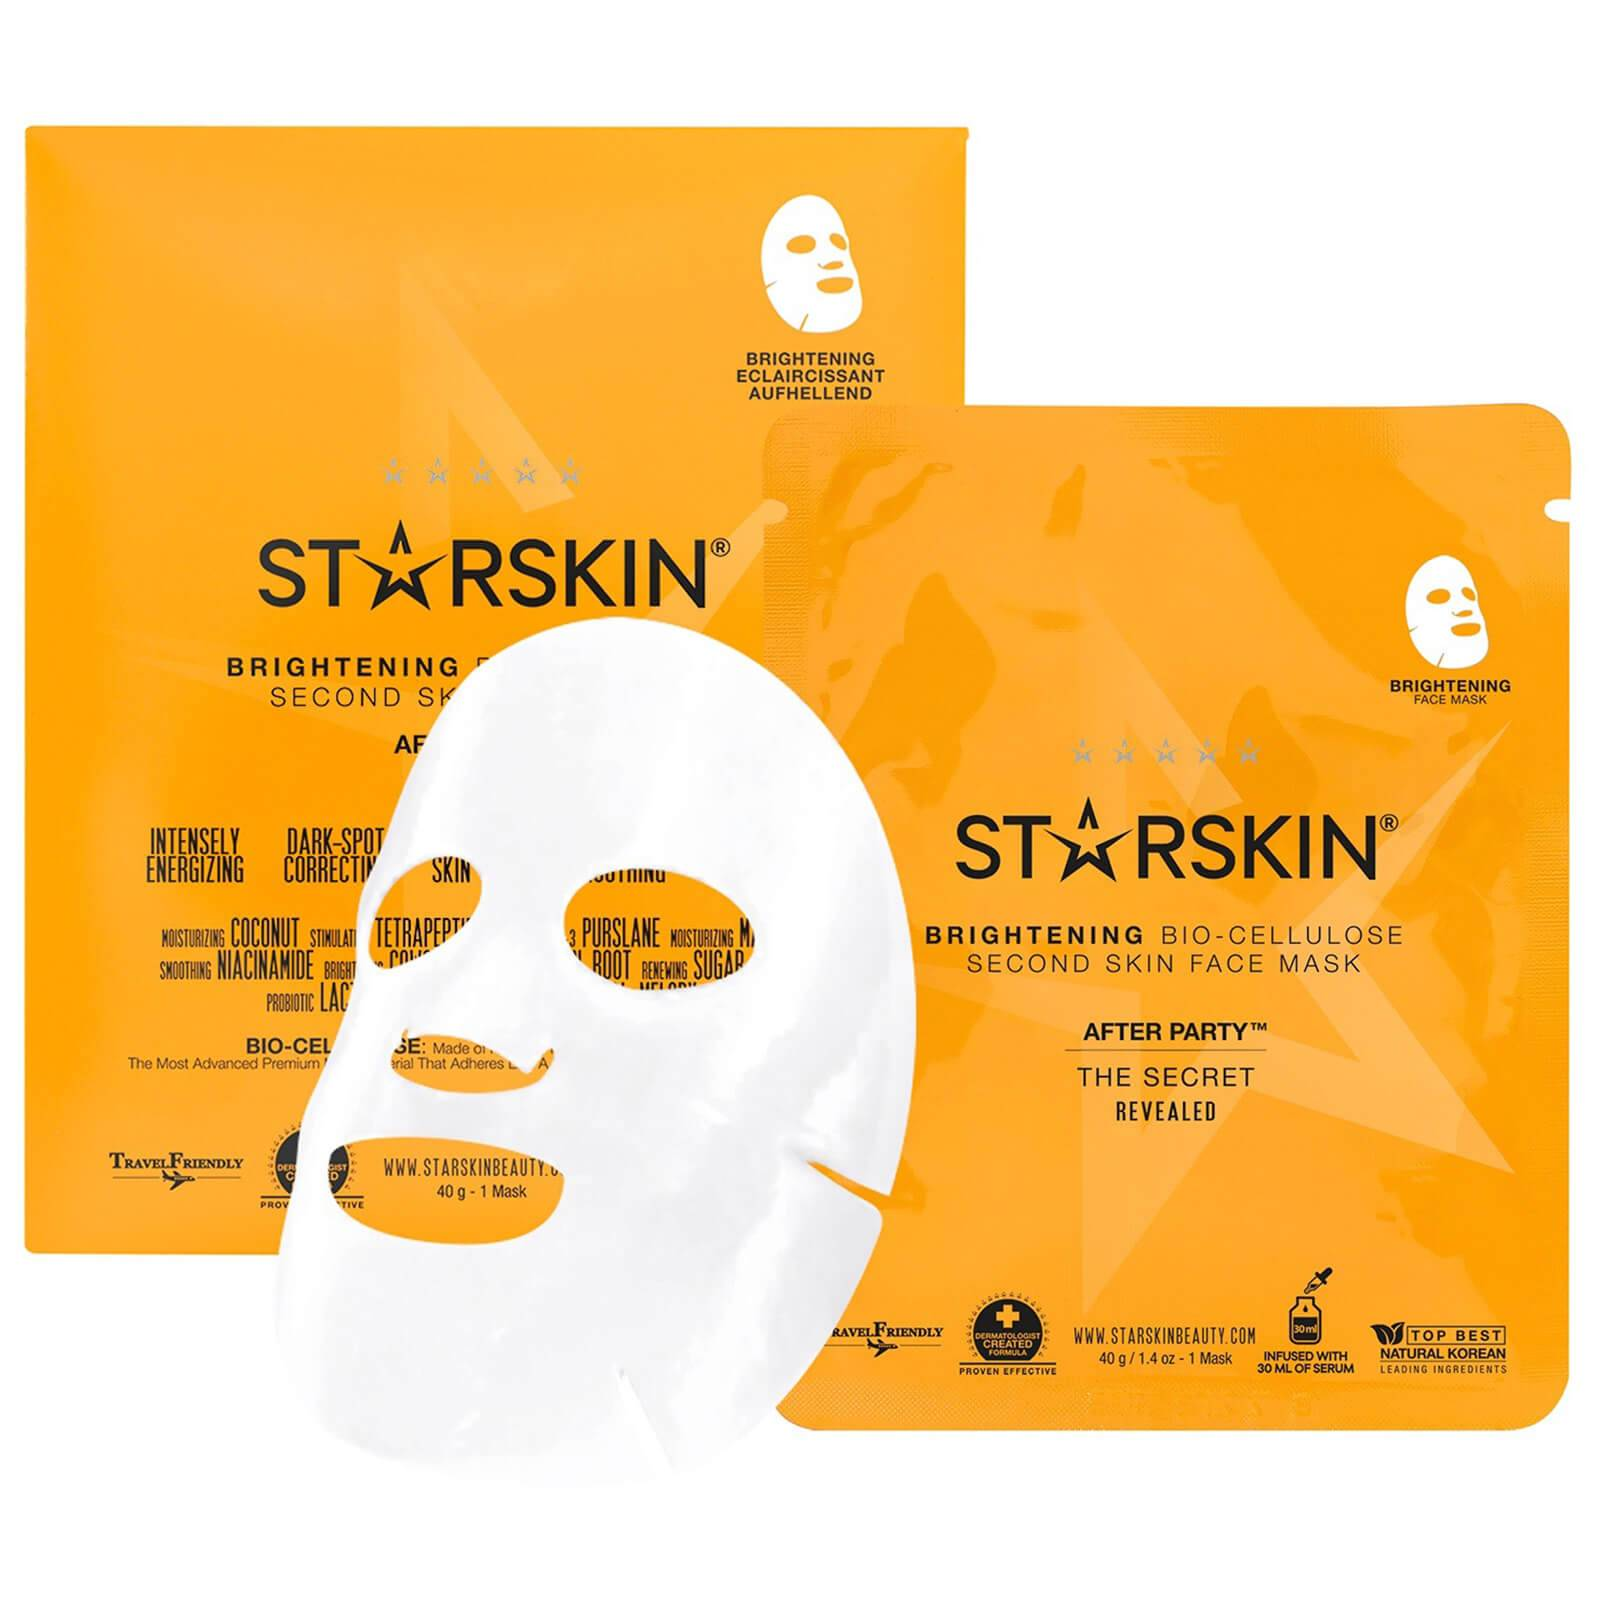 STARSKIN Masque Visage Éclaircissant Seconde Peau Noix de Coco Bio-Cellulose After Party™ STARSKIN